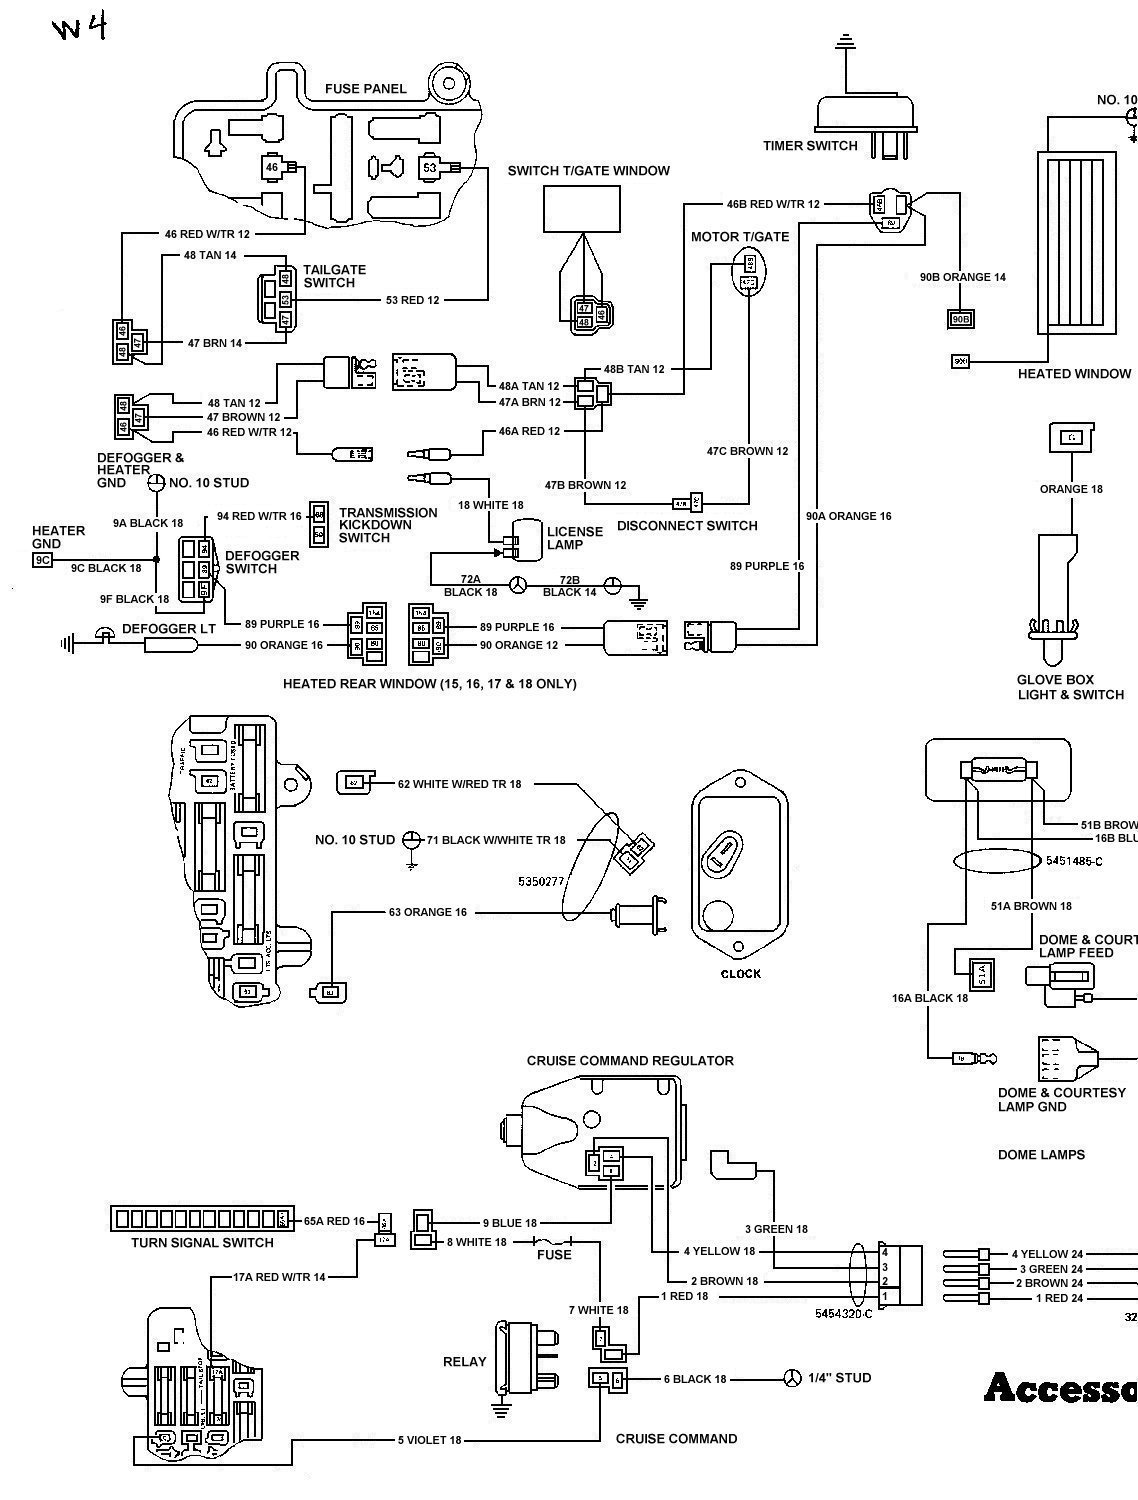 hight resolution of 1982 jeep ignition wiring wiring diagram paper1976 jeep cj7 ignition wiring wiring diagram new 1982 jeep